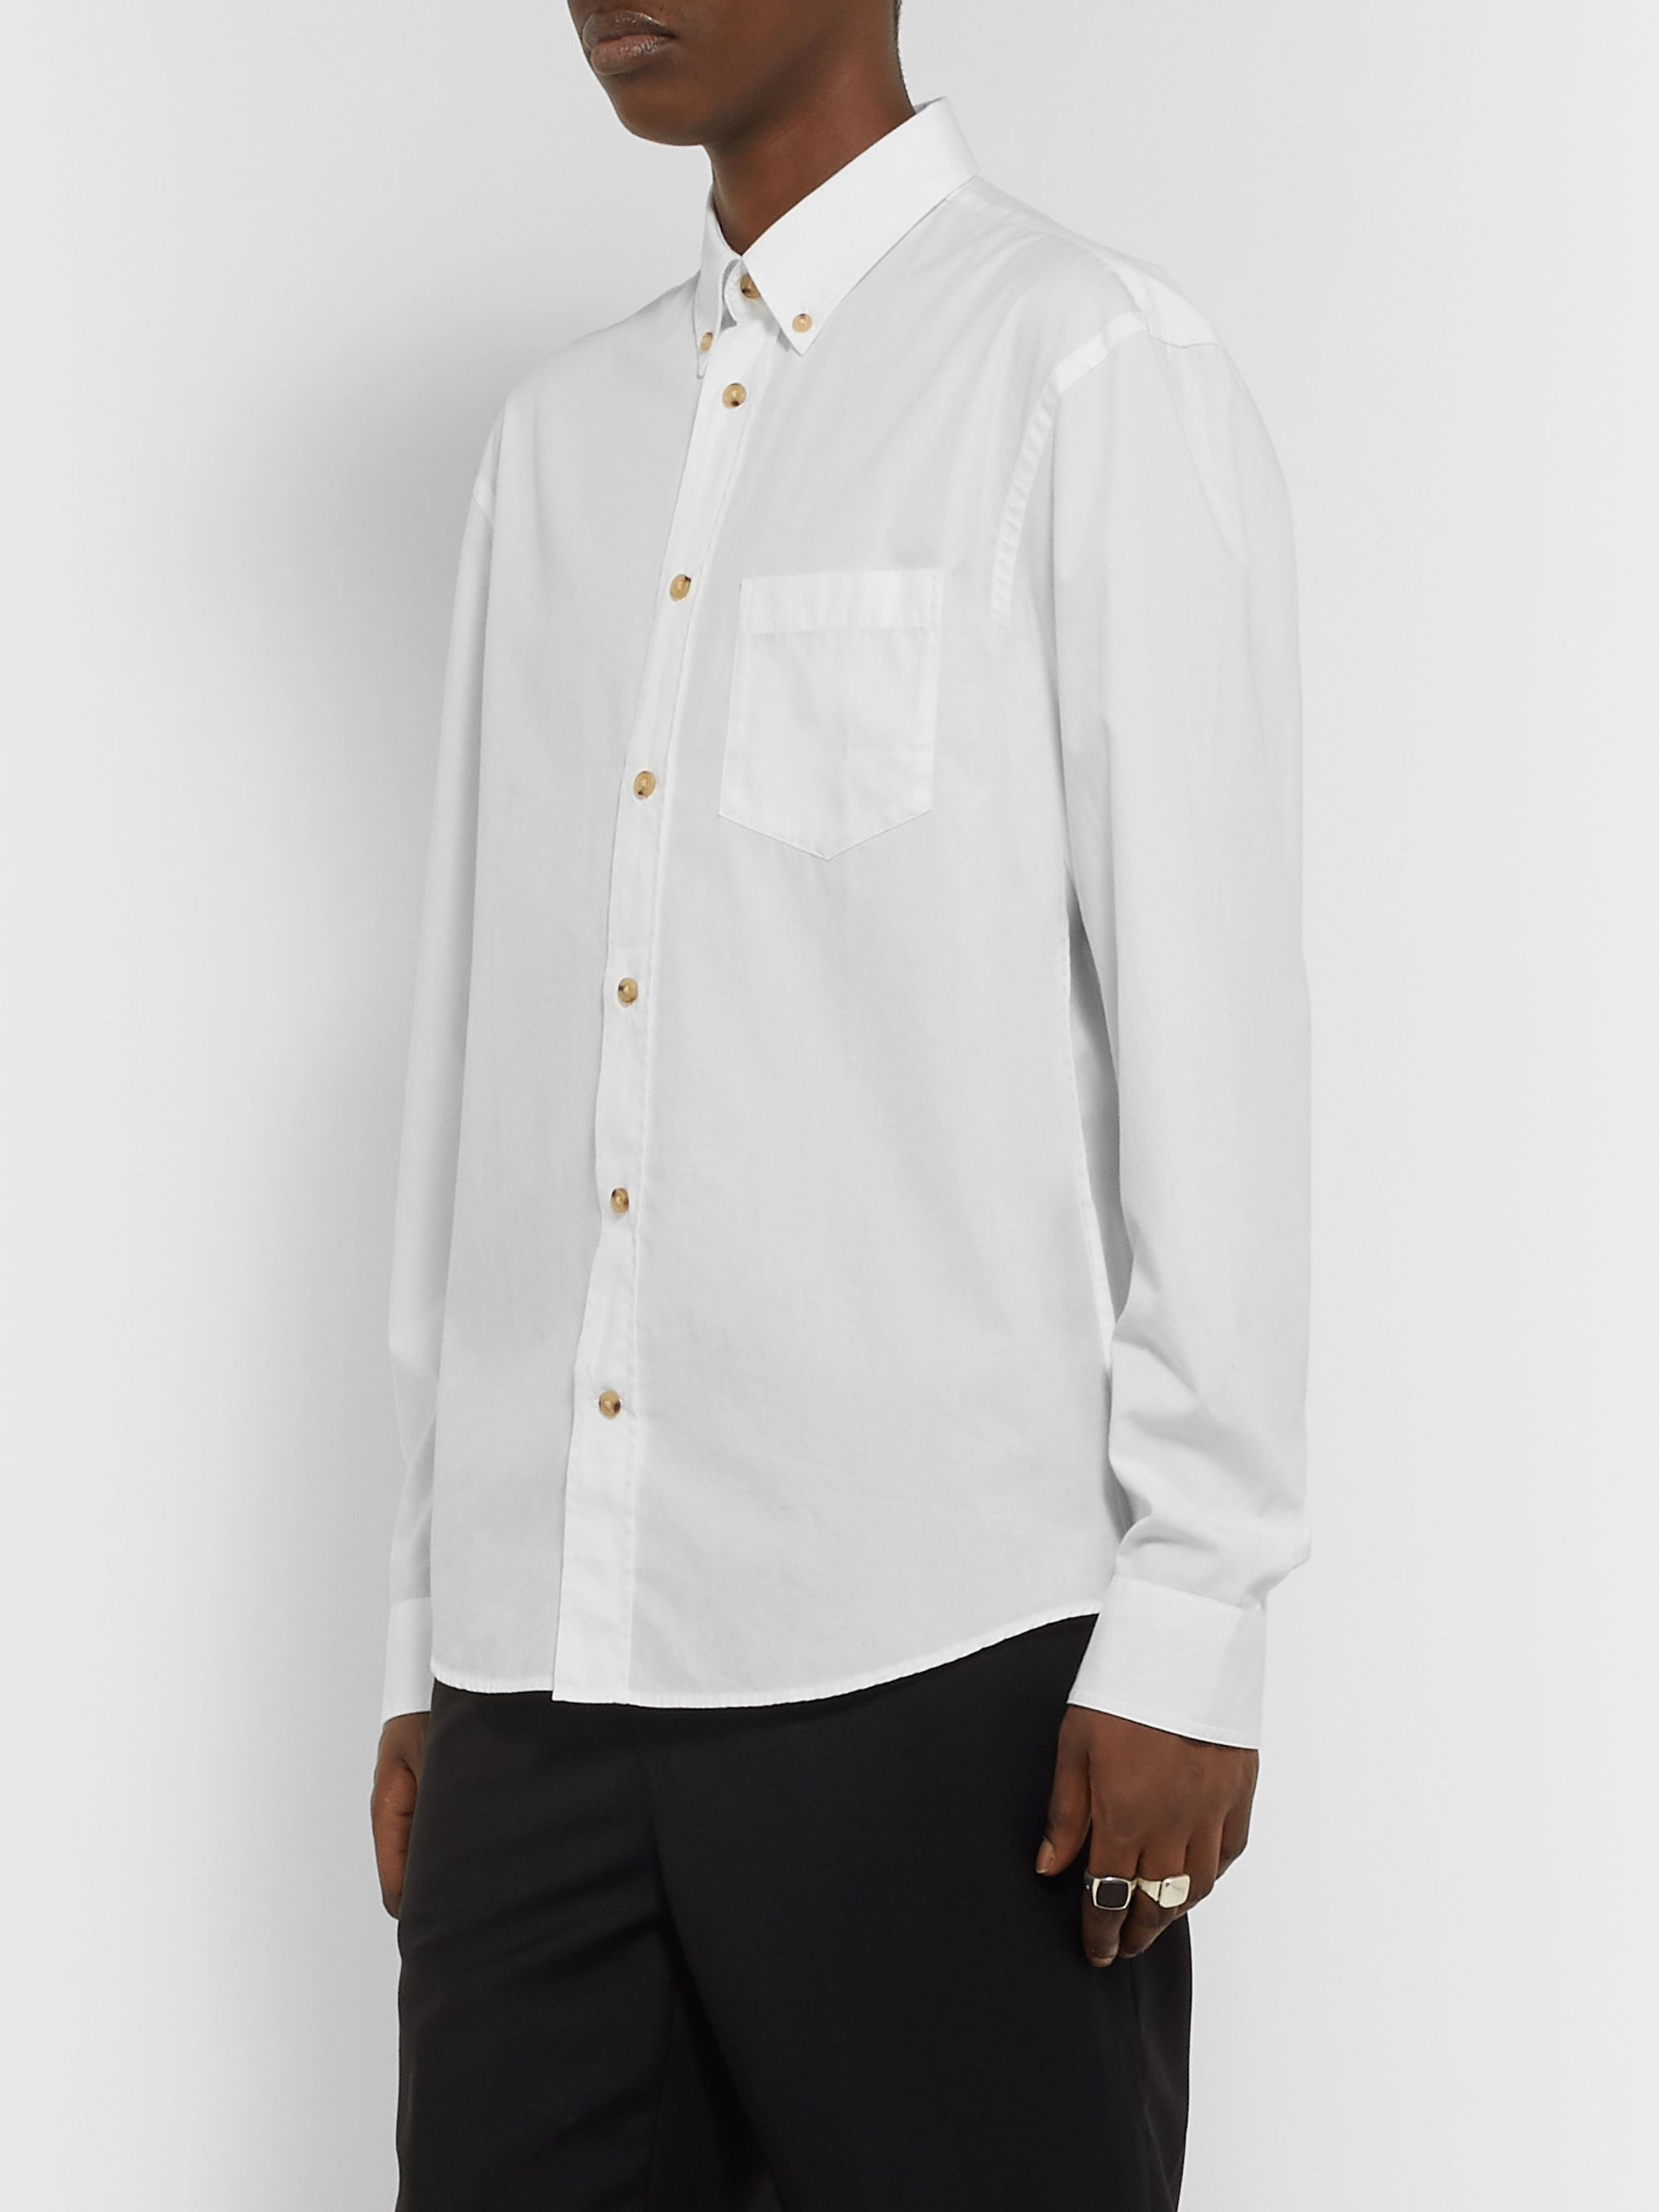 Acne Studios Button-Down Collar Cotton-Poplin Shirt